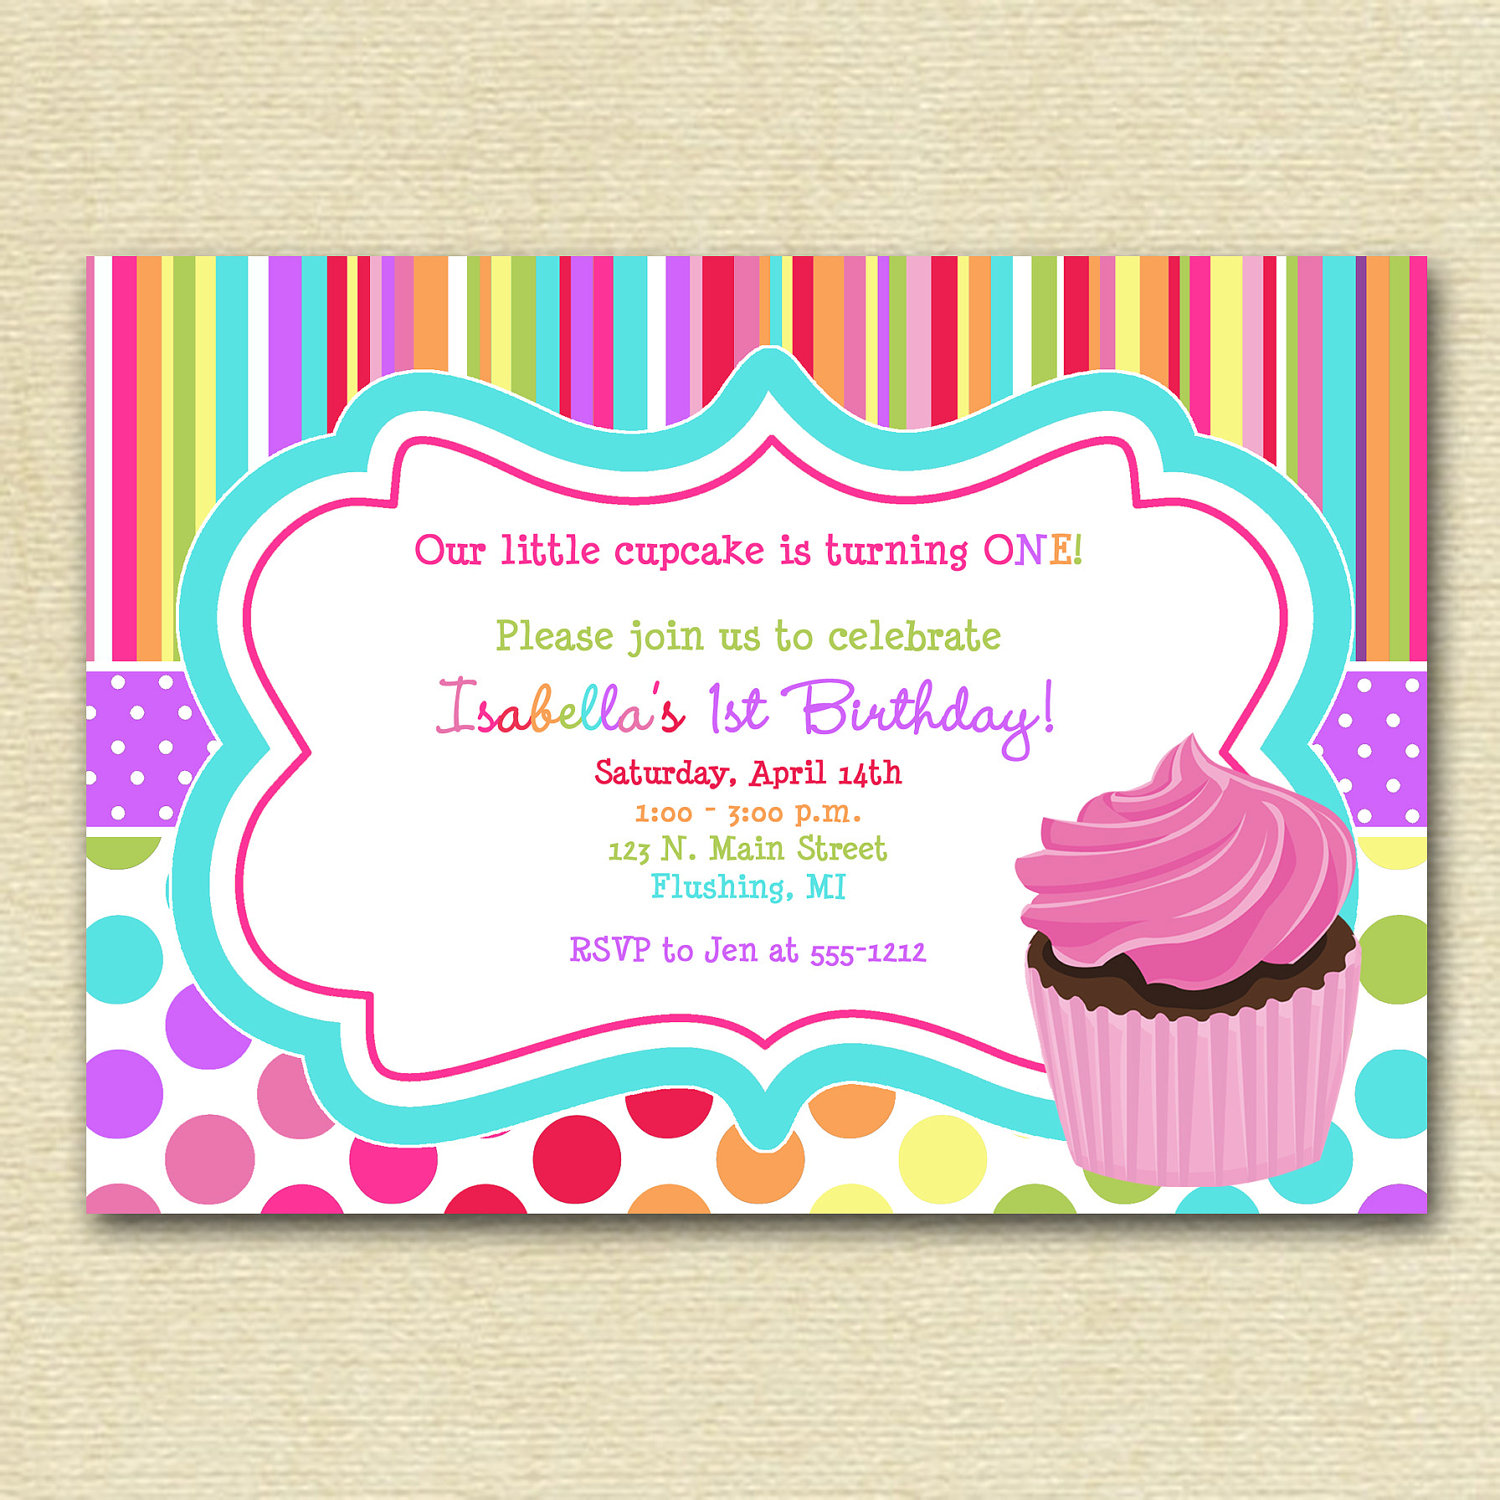 cupcake birthday invitation template ; cupcake-birthday-invitations-using-an-excellent-design-idea-aimed-to-prettify-your-Birthday-Invitation-Templates-10